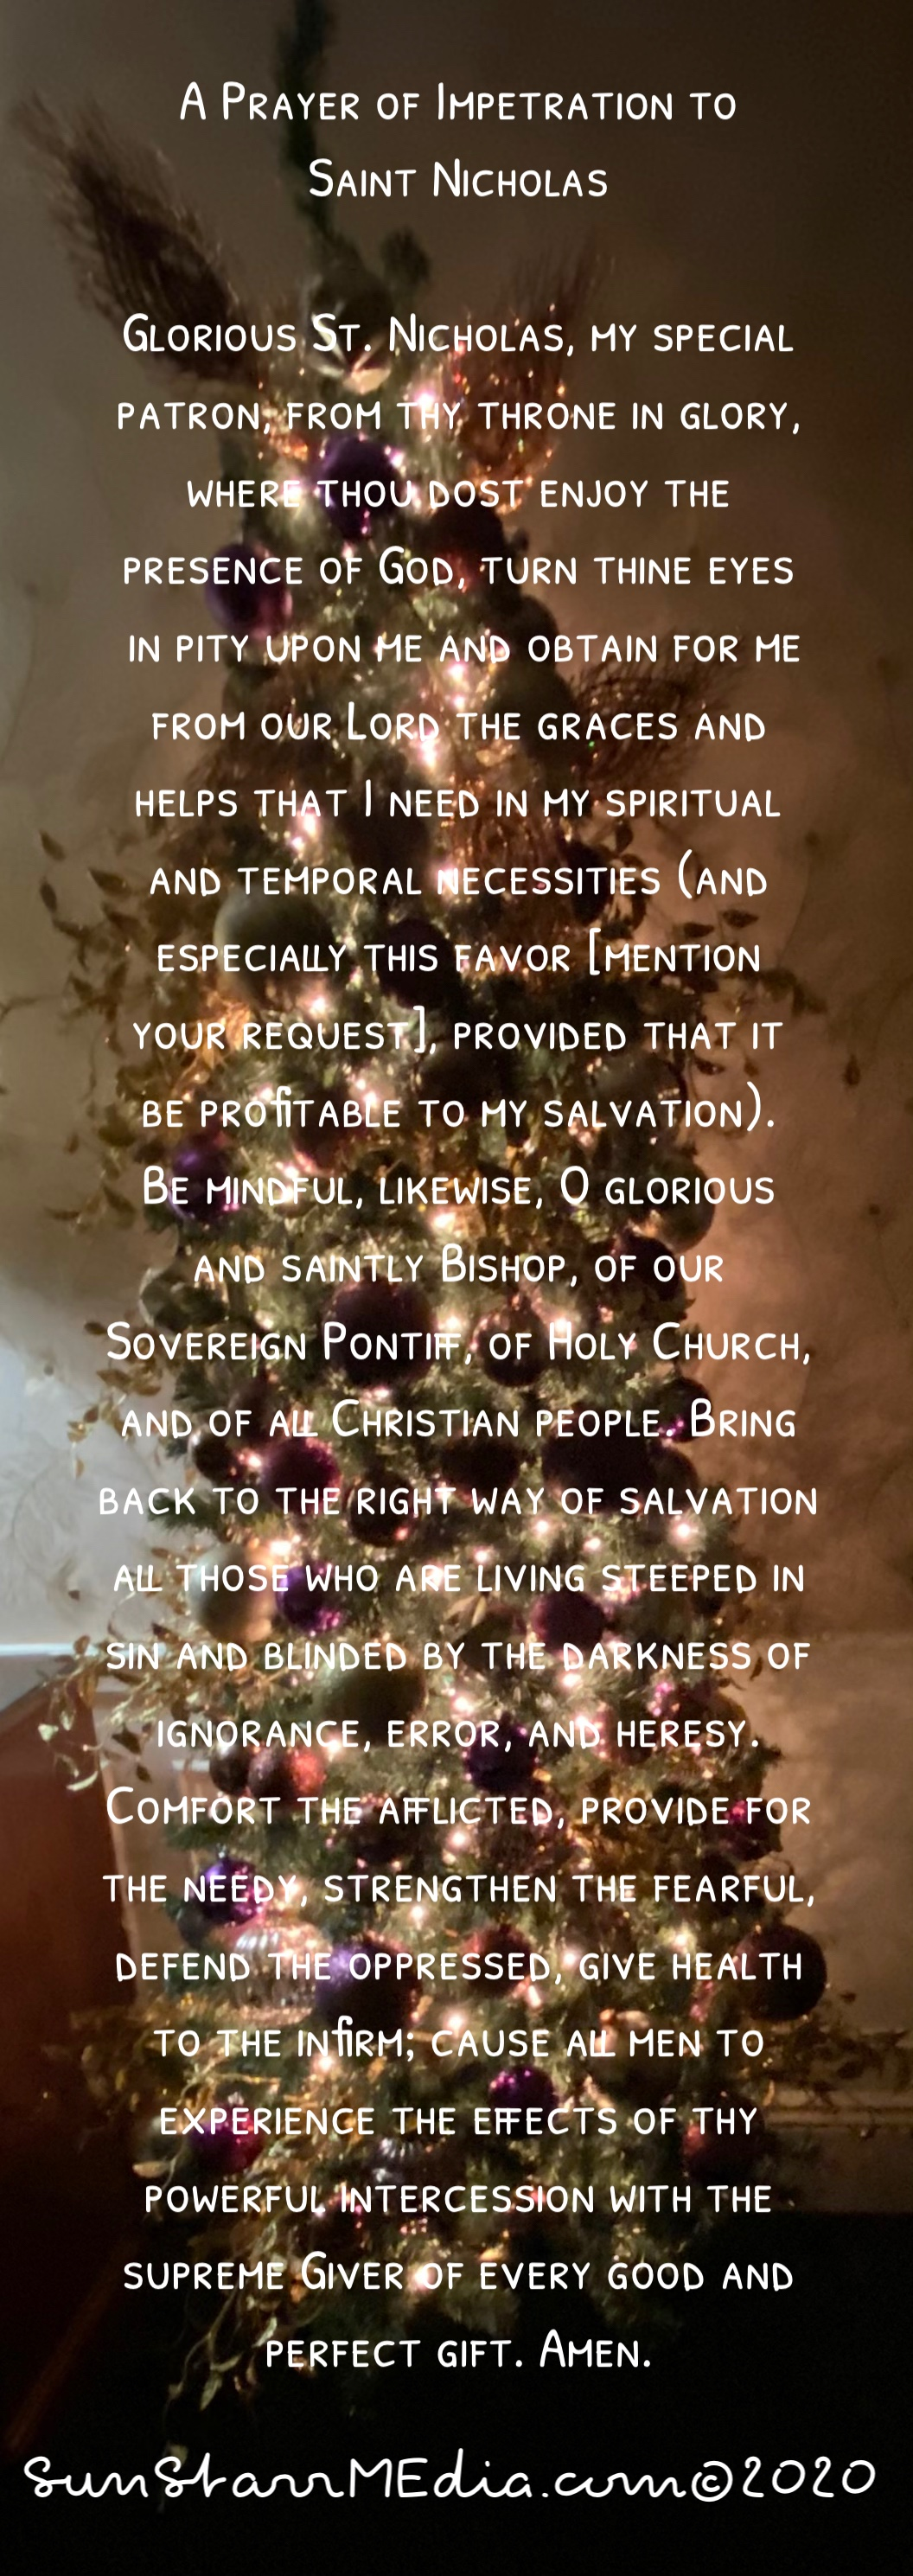 A Prayer of Impetration to Saint Nicholas  Glorious St. Nicholas, my special patron, from thy throne in glory, where thou dost enjoy the presence of God, turn thine eyes in pity upon me and obtain for me from our Lord the graces and helps that I need in my spiritual and temporal necessities (and especially this favor [mention your request], provided that it be profitable to my salvation). Be mindful, likewise, O glorious and saintly Bishop, of our Sovereign Pontiff, of Holy Church, and of all Christian people. Bring back to the right way of salvation all those who are living steeped in sin and blinded by the darkness of ignorance, error, and heresy. Comfort the afflicted, provide for the needy, strengthen the fearful, defend the oppressed, give health to the infirm; cause all men to experience the effects of thy powerful intercession with the supreme Giver of every good and perfect gift. Amen. Our Father, Hail Mary, Glory be V. Pray for us, O blessed Nicholas. R. That we may be made worthy of the promises of Christ. Let us pray. O God, who has glorified blessed Nicholas, Thine illustrious Confessor and Bishop, by means of countless signs and wonders, and who dost not cease daily so to glorify him; grant, we beseech Thee, that we, being assisted by his merits and prayers, may be delivered from the fires of hell and from all dangers. Through Christ our Lord. Amen.